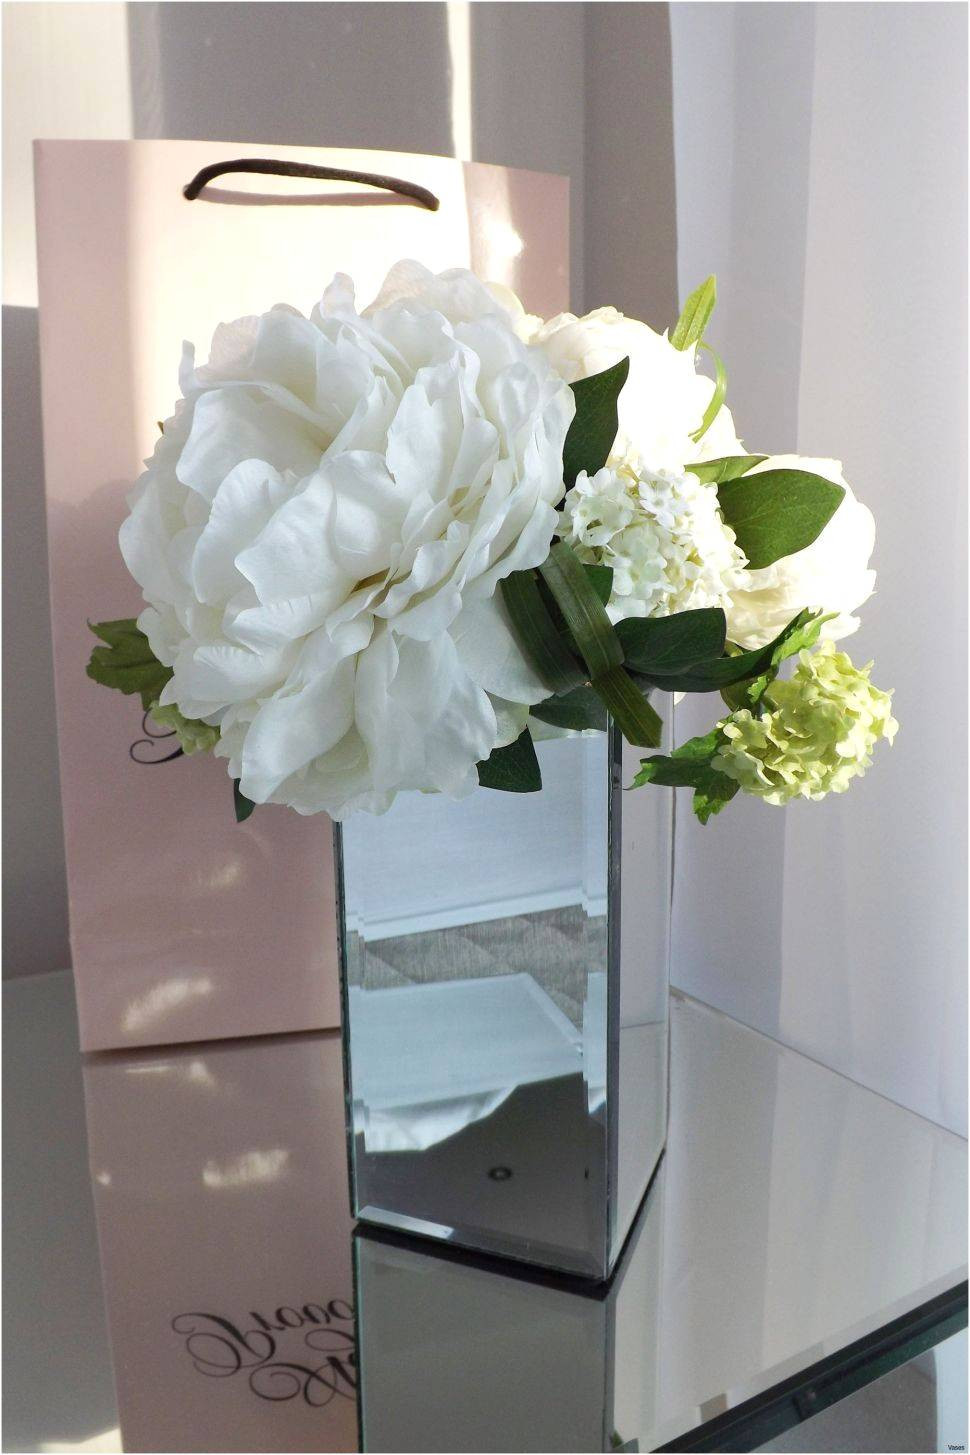 Hydrangea Centerpieces In Square Vases Of Hydrangeas Centerpieces for Weddings Luxury Silk Flowers Metal Vases Inside Hydrangeas Centerpieces for Weddings Luxury Silk Flowers Metal Vases 3h Mirrored Mosaic Vase Votivei 0d Design